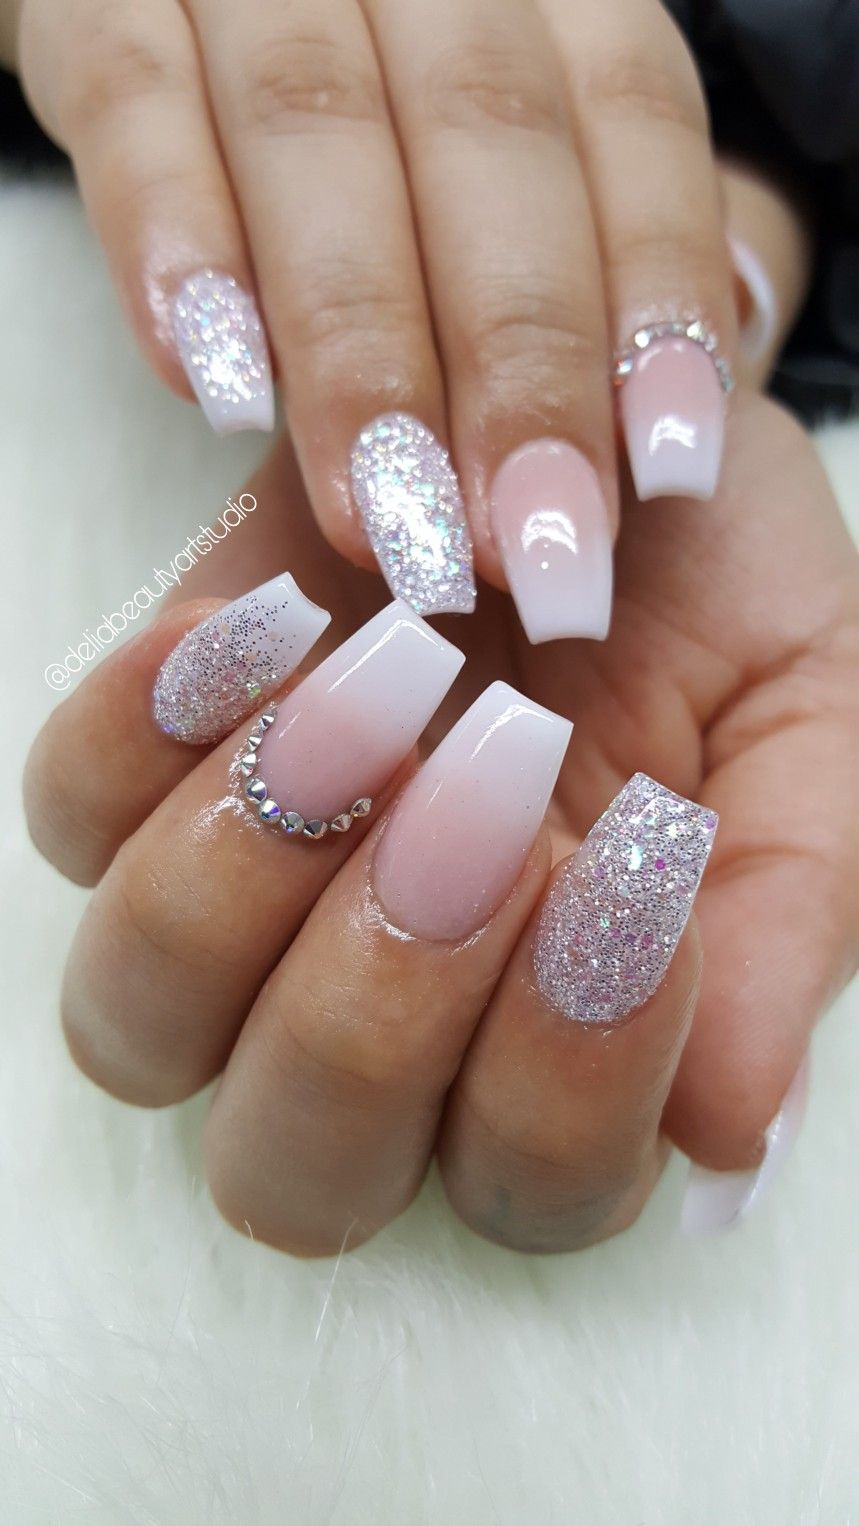 Ombre Acrylic Nails Coffin Shape Pink Glitter Nails Ombre Acrylic Nails Coffin Shape Nails